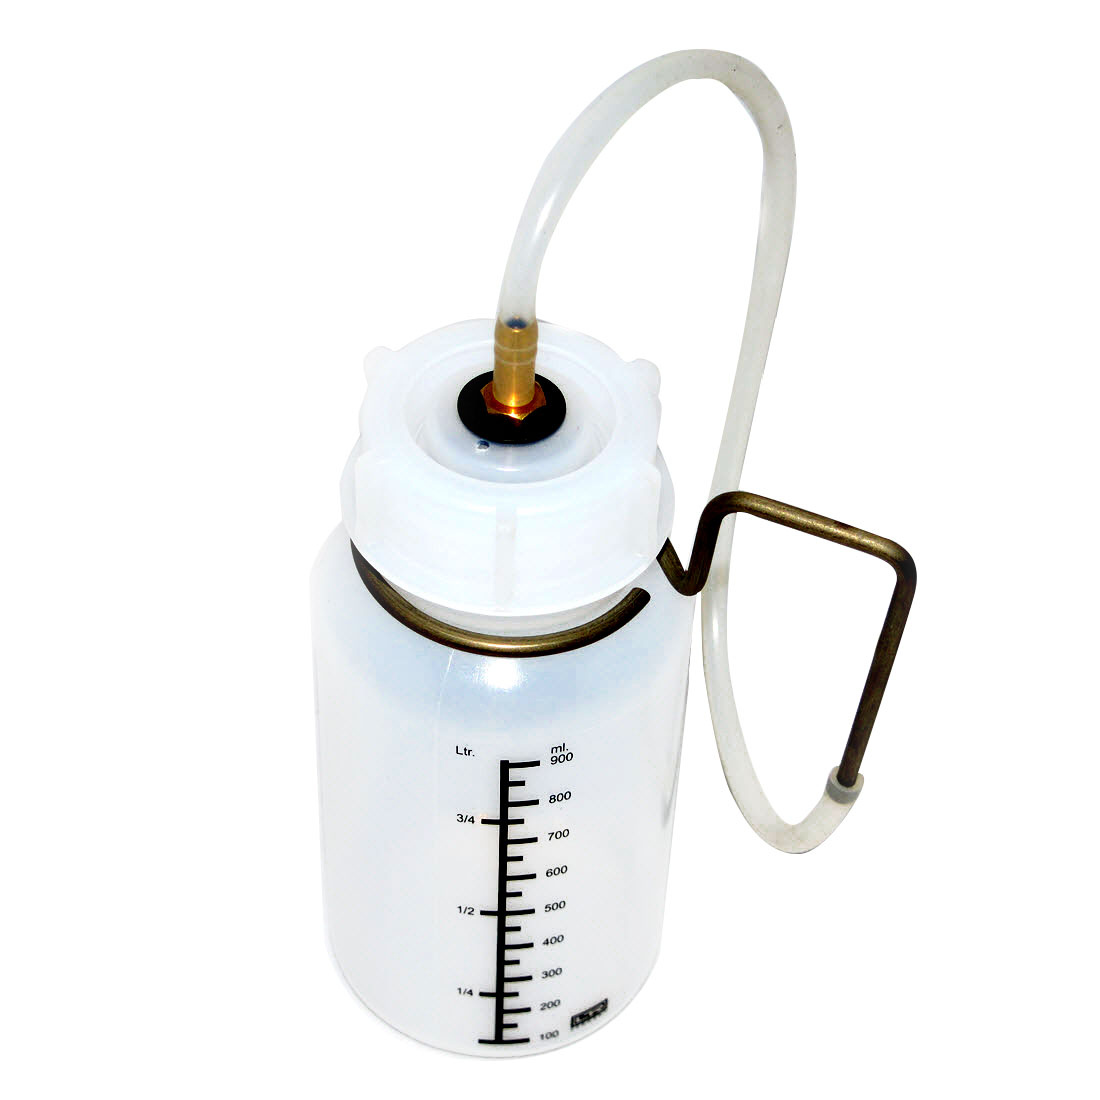 brake bleeder bottle